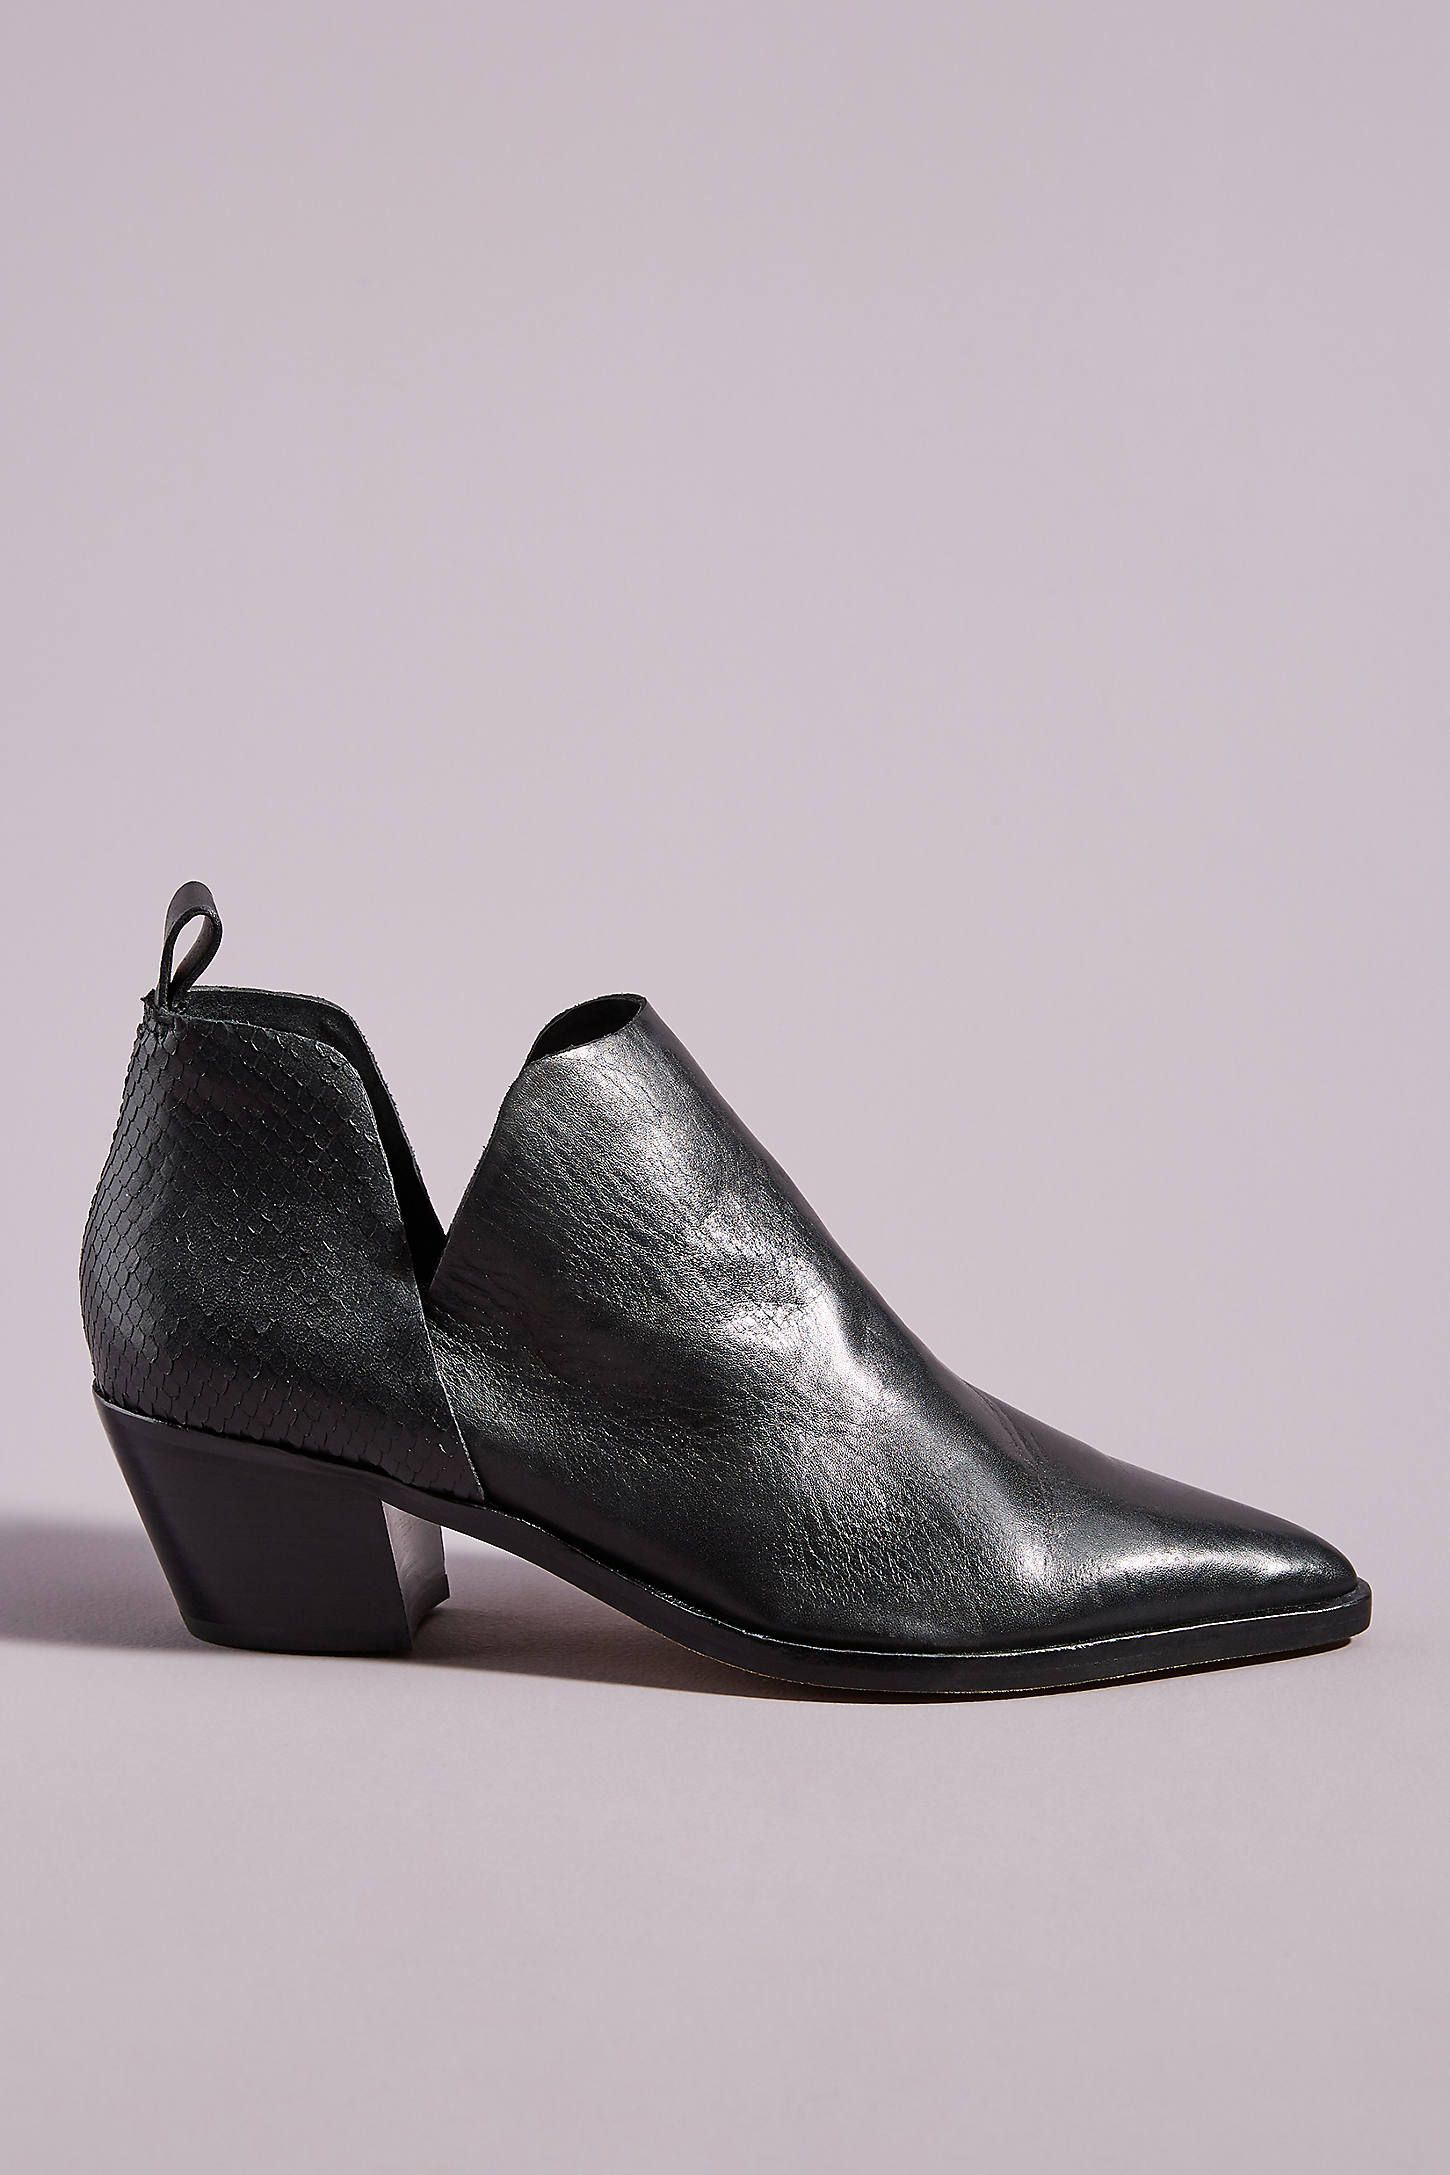 Dolce Vita Sonni Side-Cut Booties by in Black Size: 6.5, Boots at Anthropologie